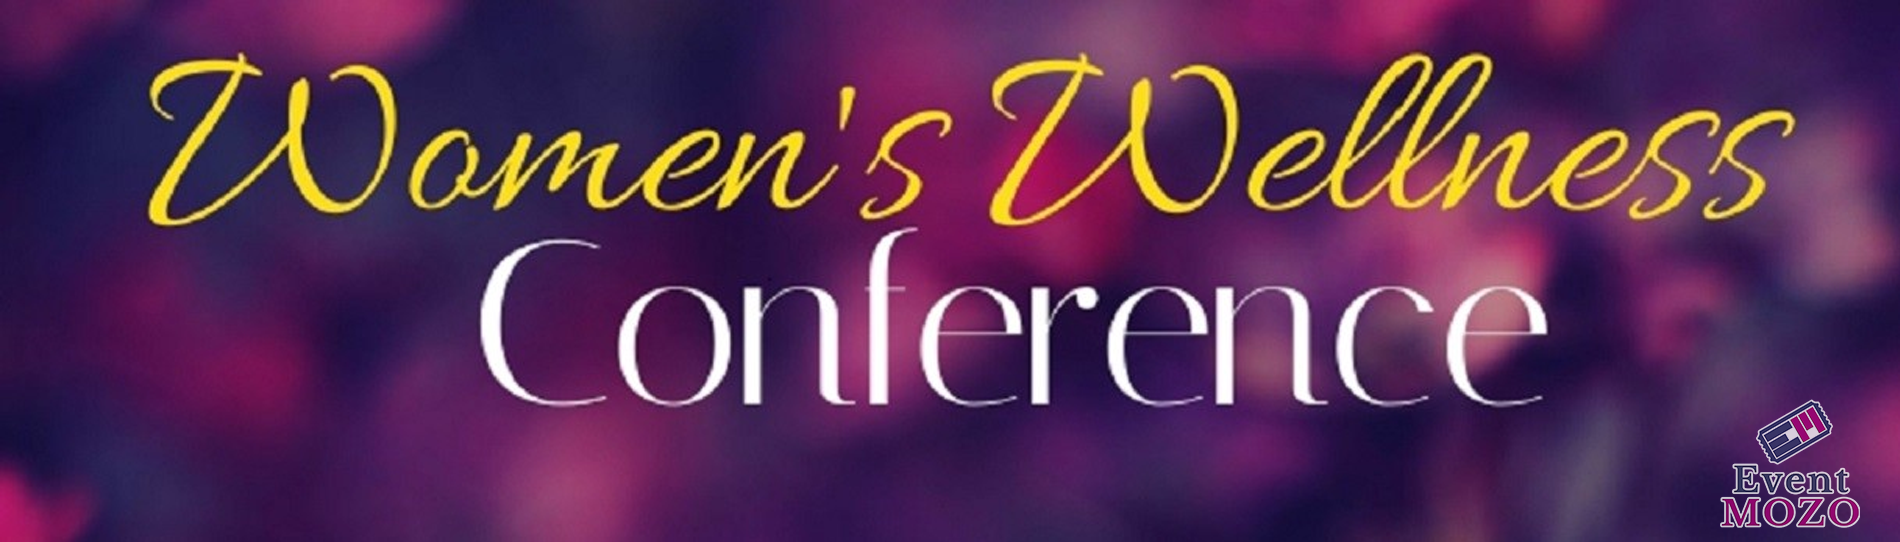 EventMozo Womens Wellness Conference by Narika